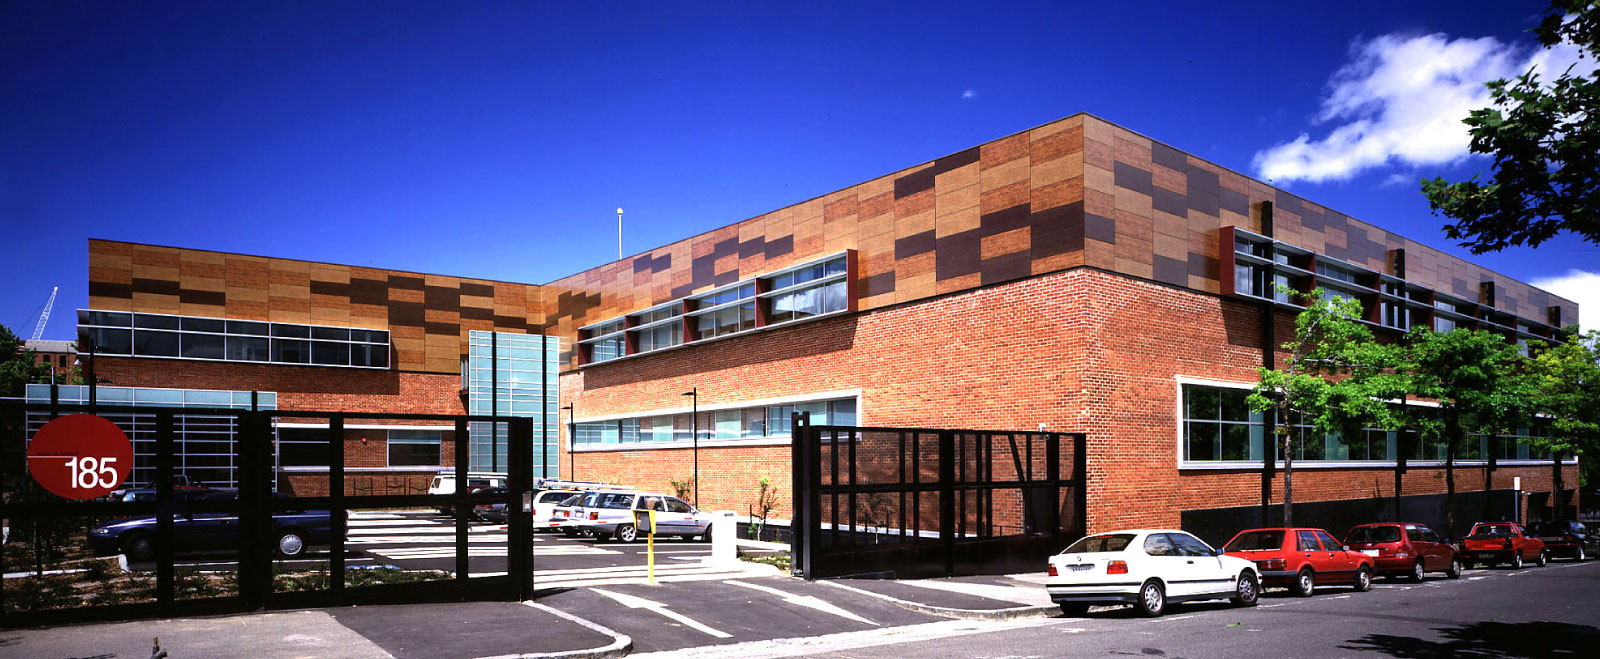 H2o-Architects-Melbourne-Australia-Post-Shared-Services-01